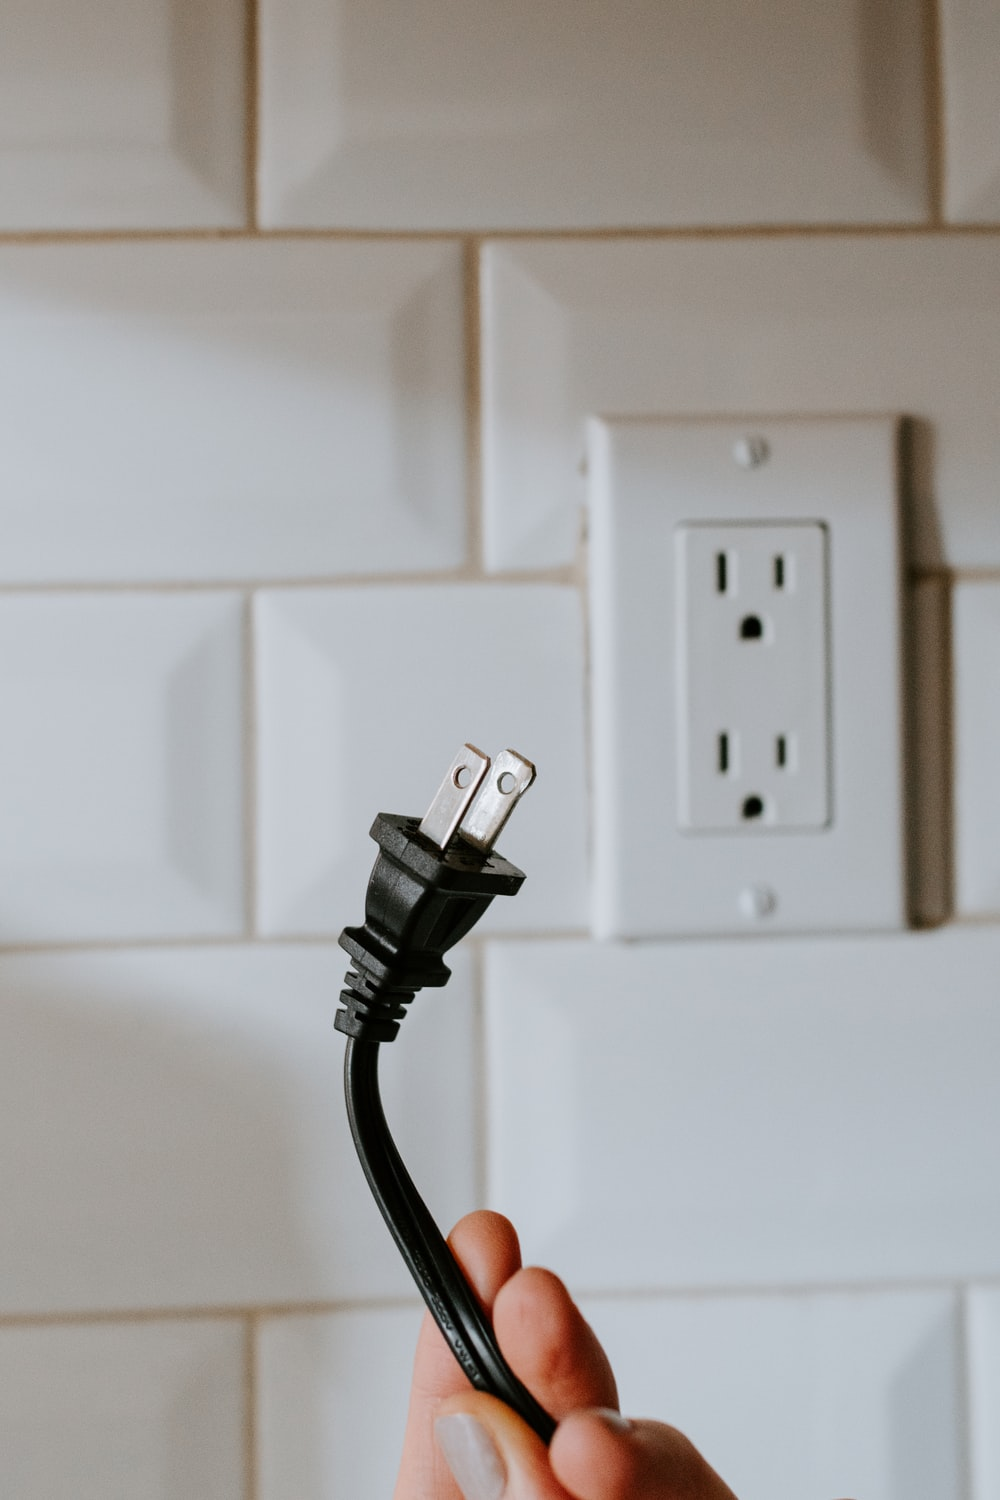 black usb cable plugged in white electric socket